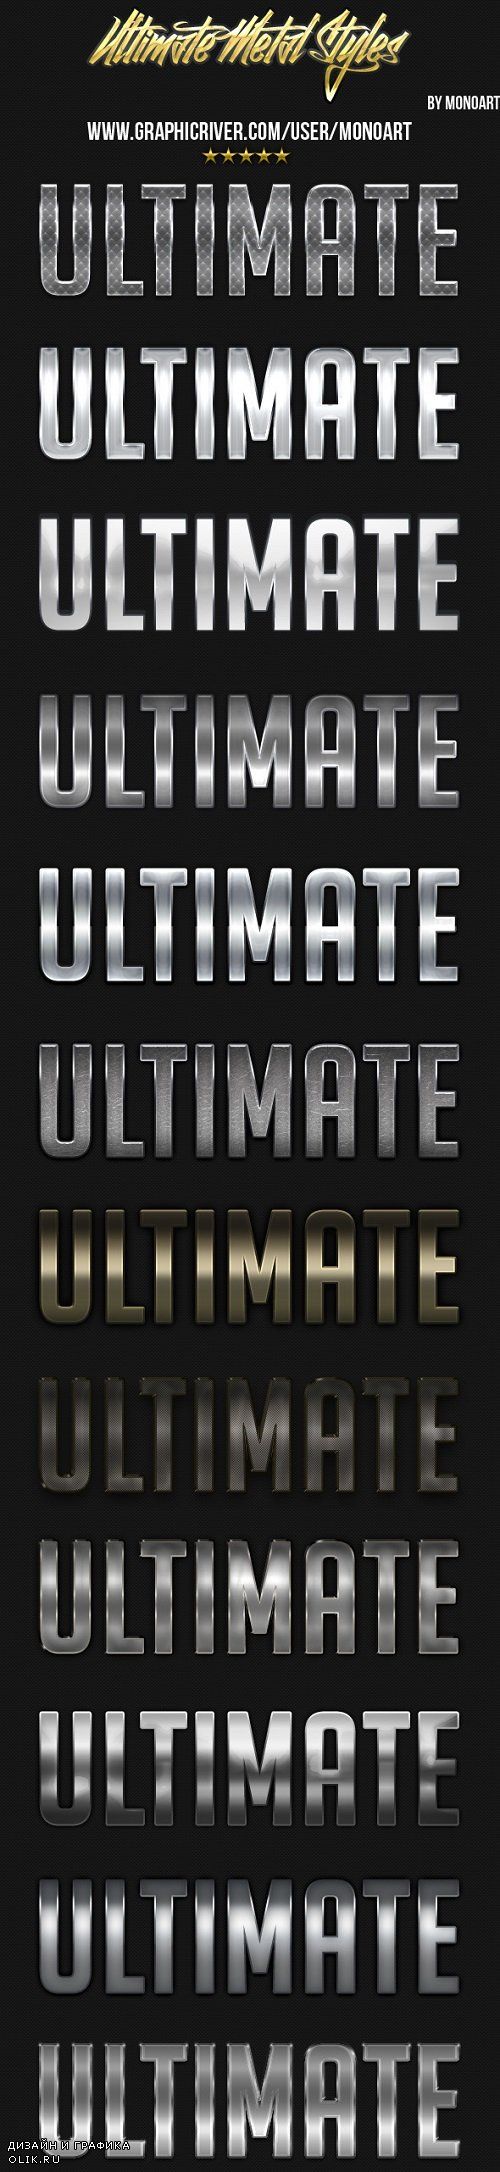 Ultimate Metal Styles - 5269102